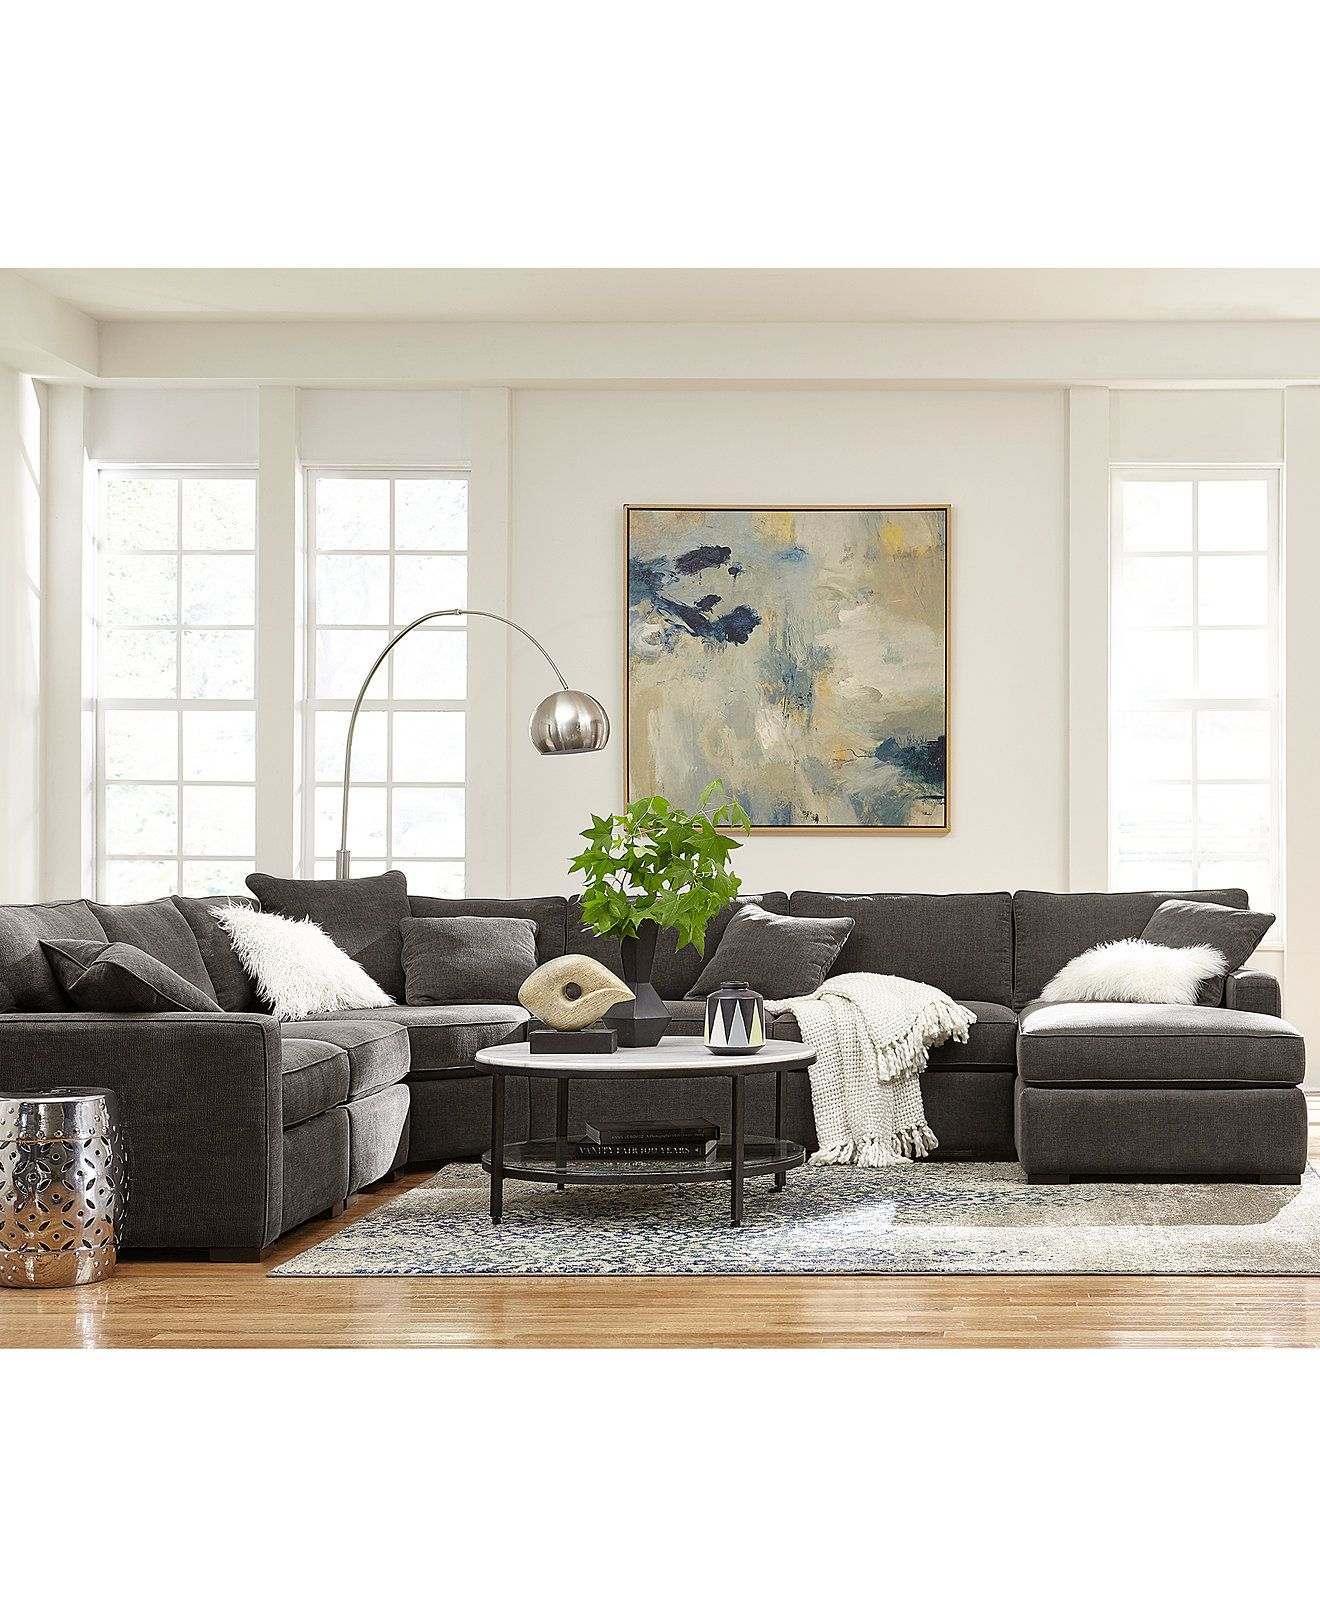 Radley Fabric Sectional Sofa Collection, Created For Macy